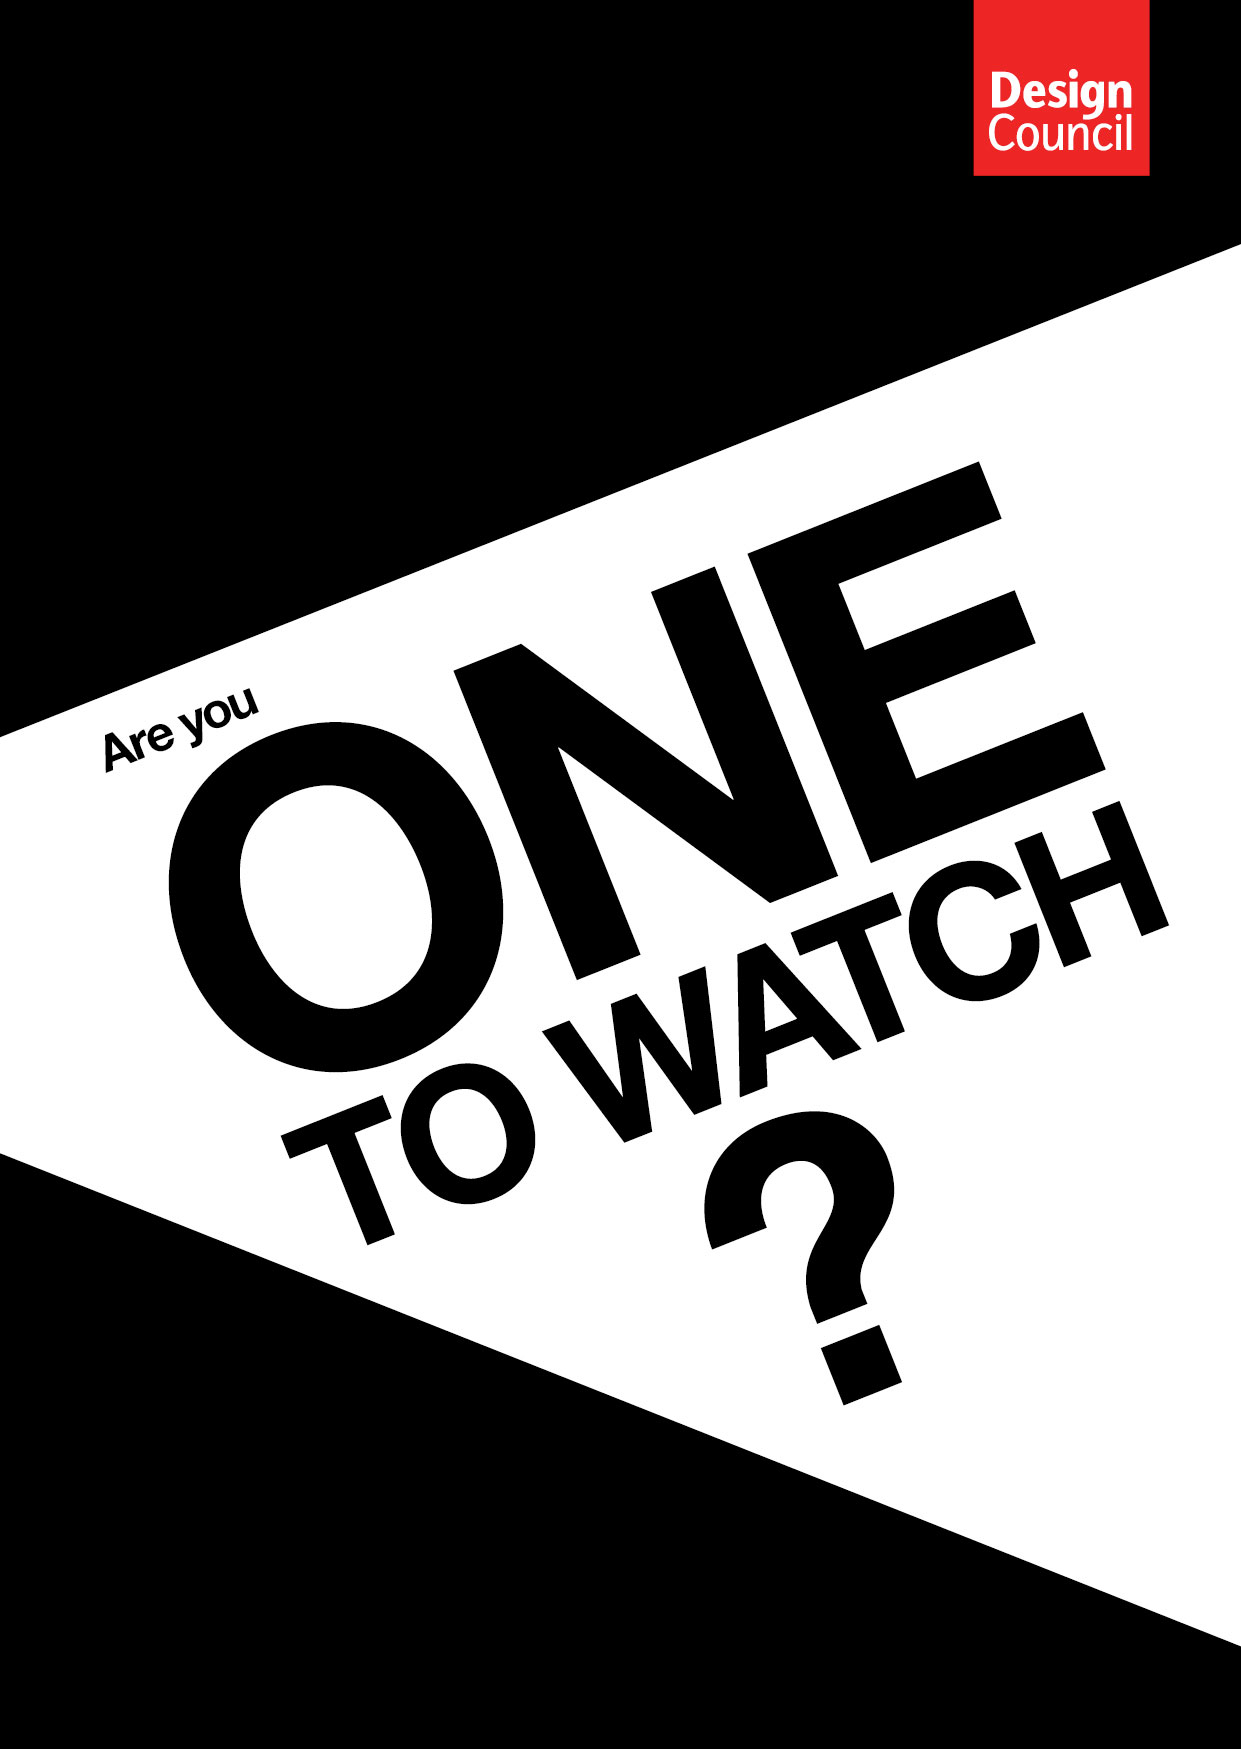 dc_onestowatch_leaflet_web_0.jpg - Are you one to watch? - 6582